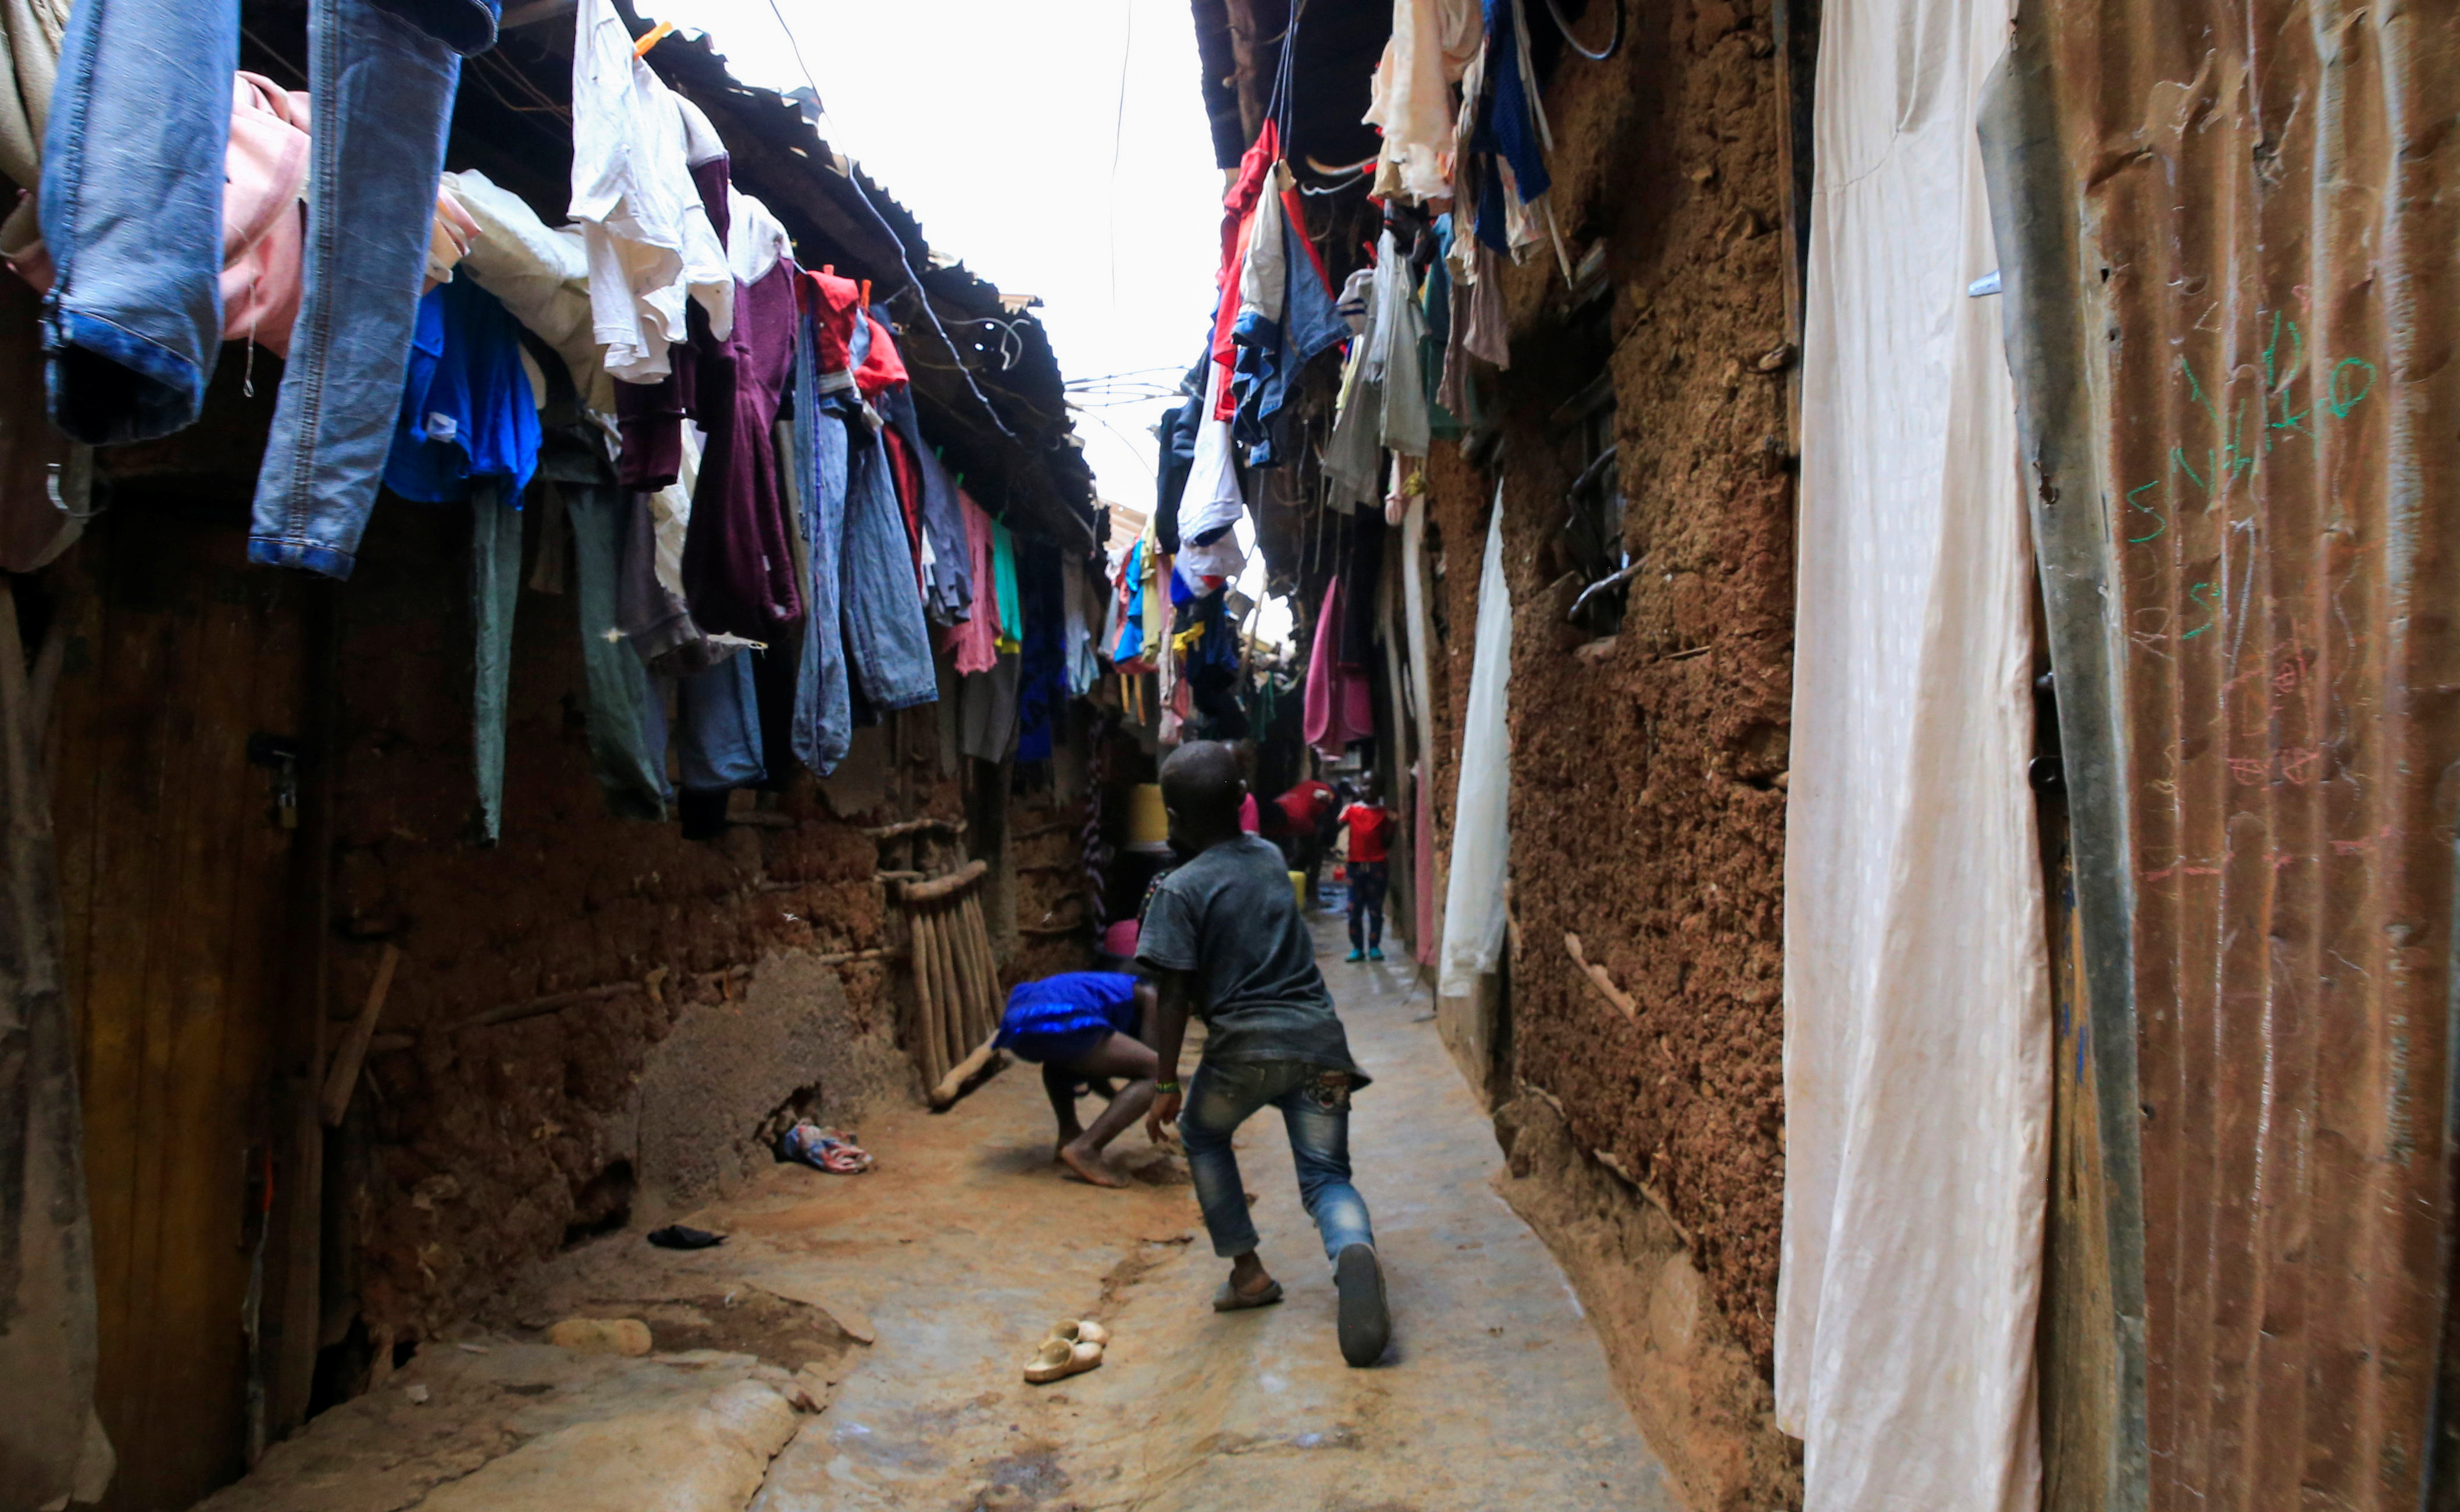 Children play in a courtyard under a hung out laundry amid the coronavirus disease (COVID-19) outbreak, within Kibera slums in Nairobi, Kenya October 6, 2021. REUTERS/Thomas Mukoya